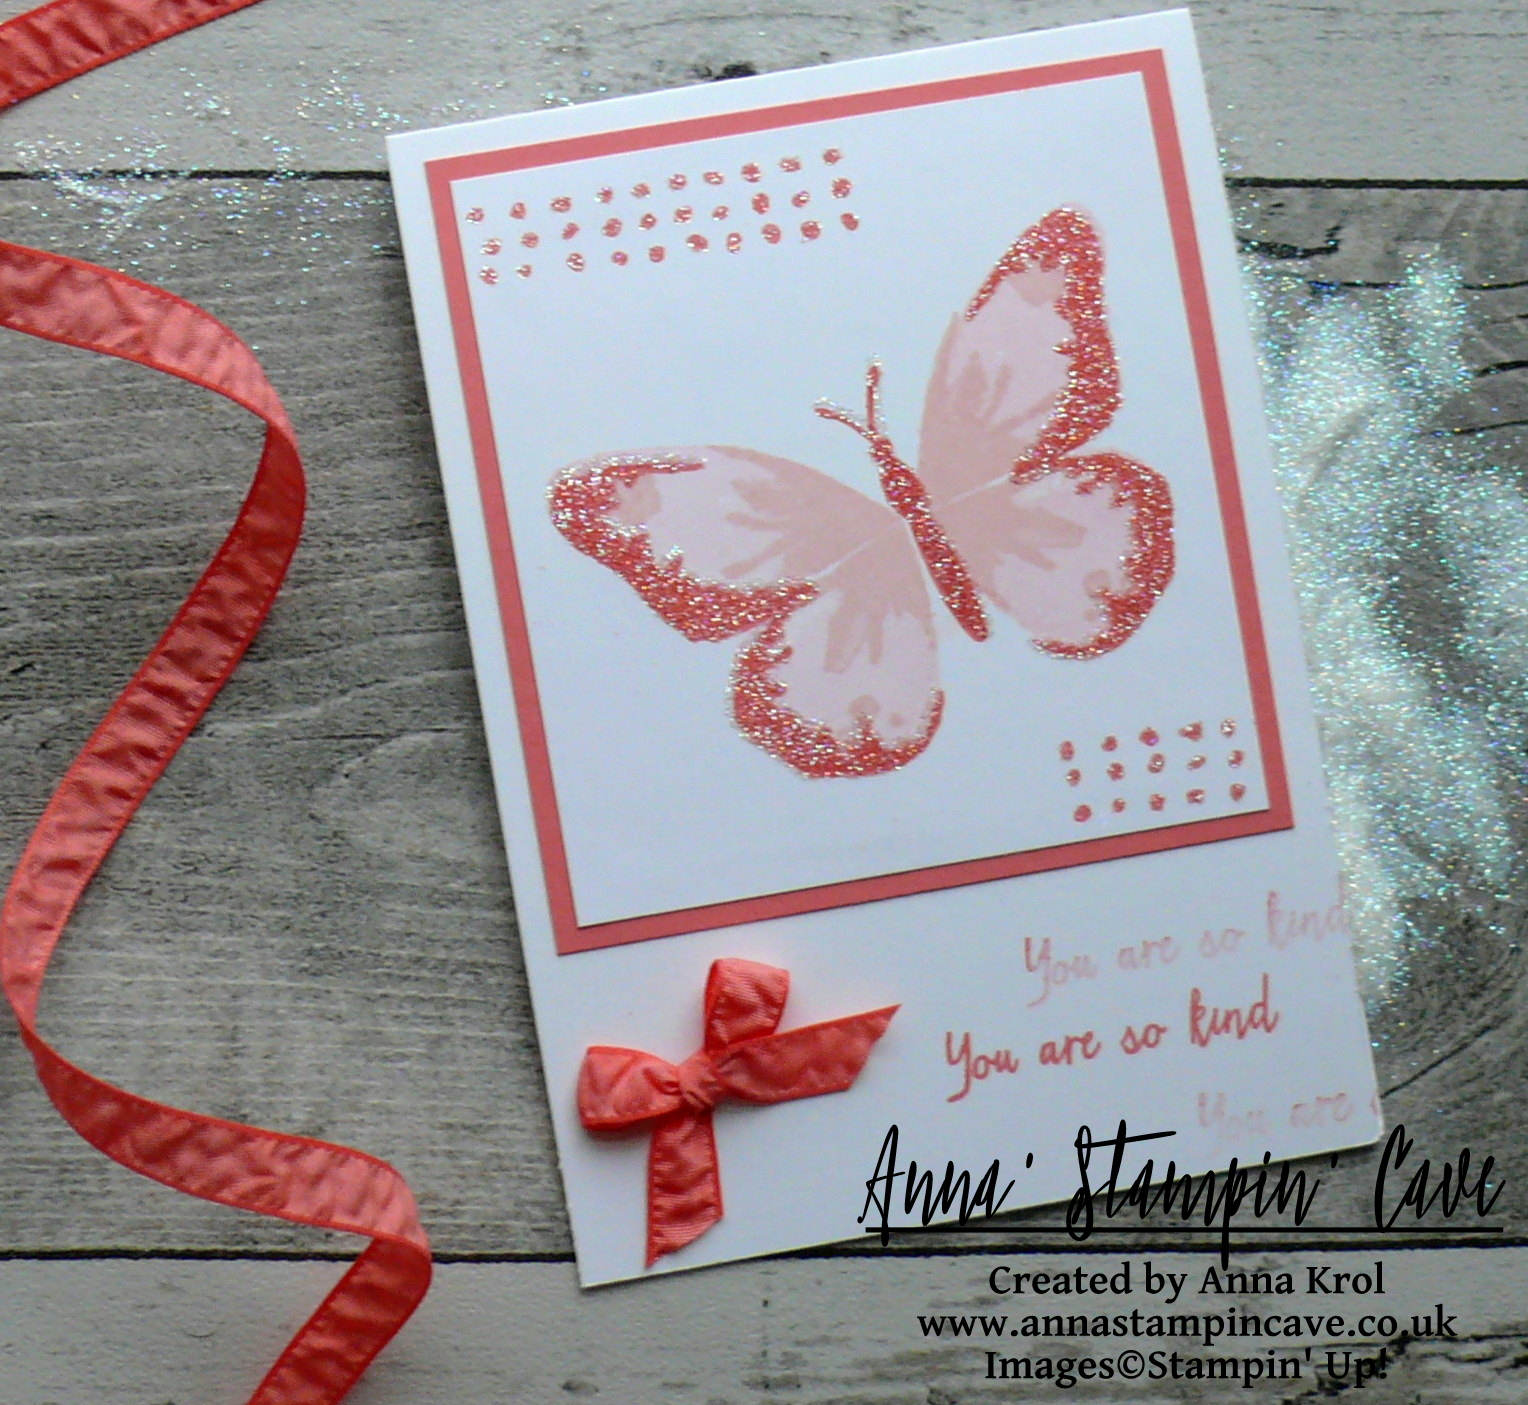 Anna' Stampin' Cave - Stampin' Up! Watercolour Wings Stamp Set - Good Things Come In Three CAS Card - GDP #083 - Flirty Flamingo_Whisper White_Dazzling Diamonds Glitter_heat&stick